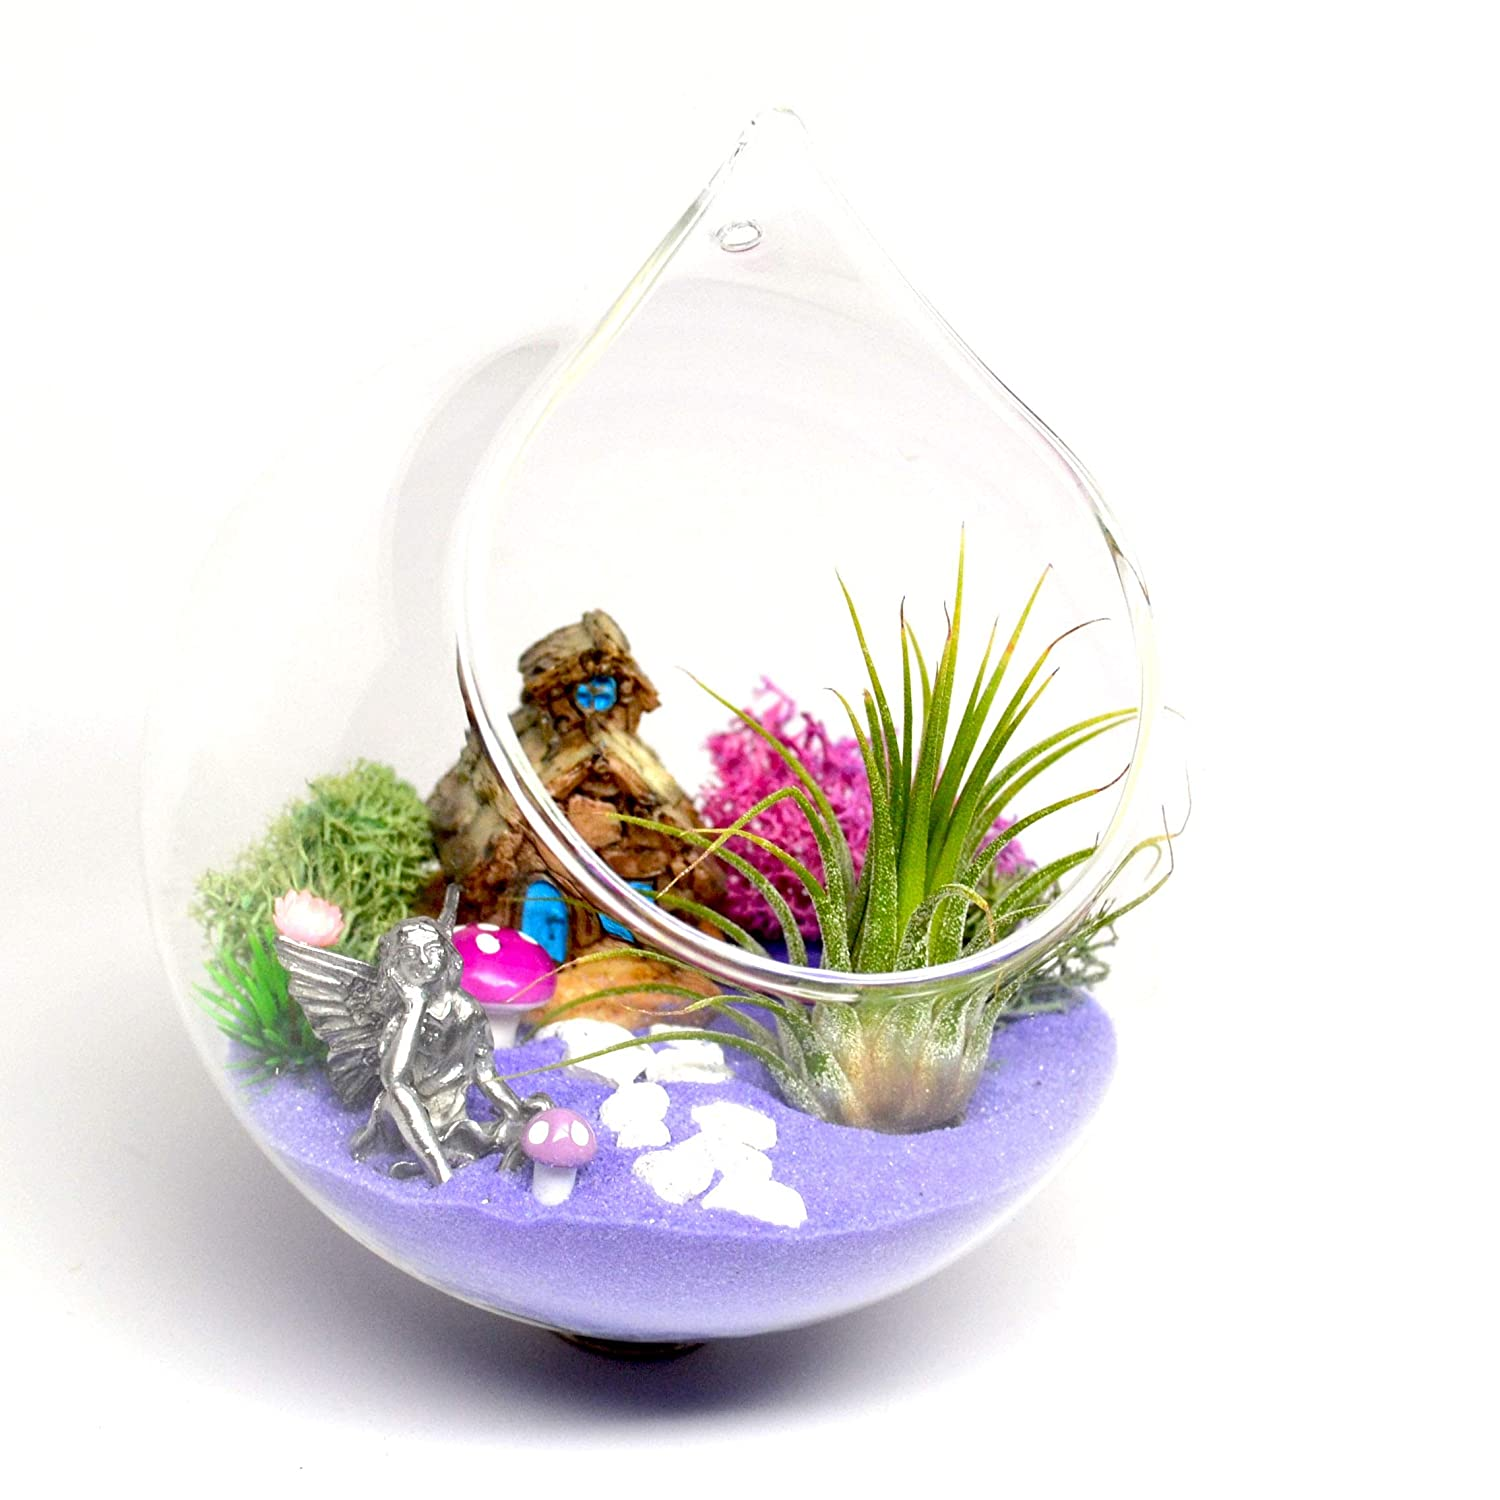 Pixie Glare Hanging Fairy Garden in a Glass Terrarium, with Pewter Fairy, Miniature Stone House, Air Plant and More Purple